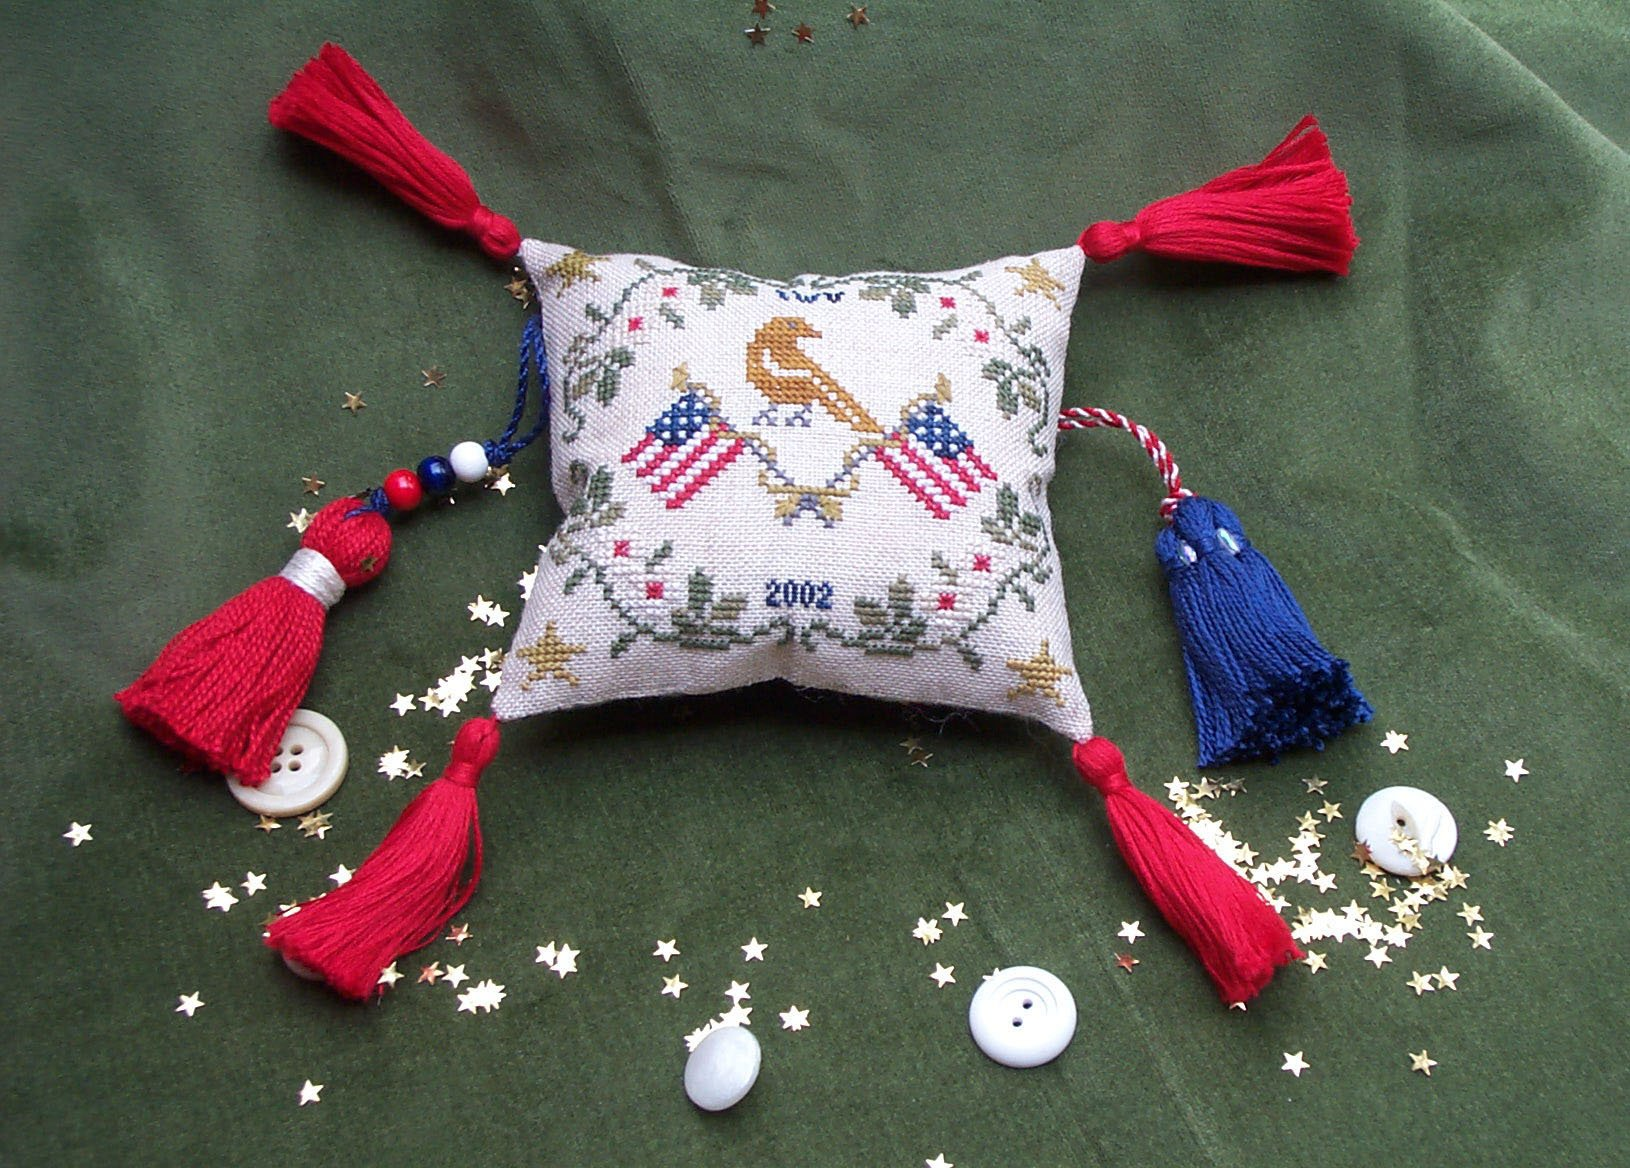 Dames of the Needle Patriot's Pynpillow